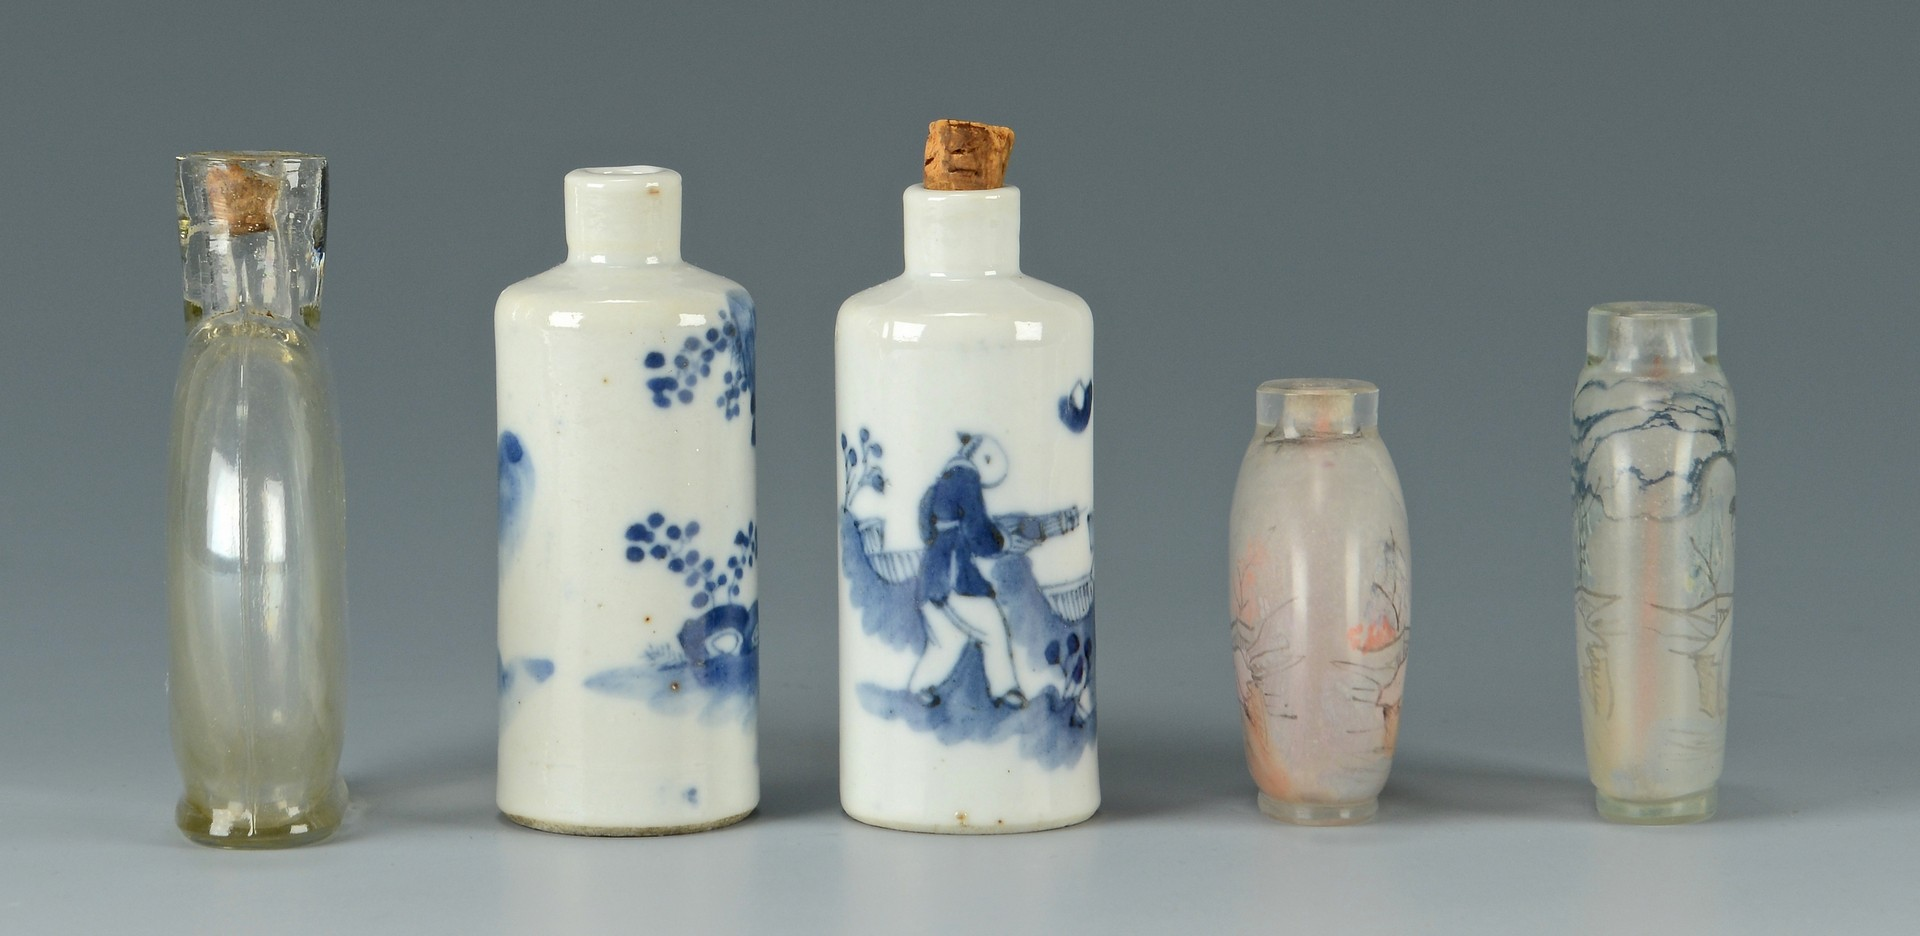 Lot 783: 4 Chinese Snuff Bottles + 1 other